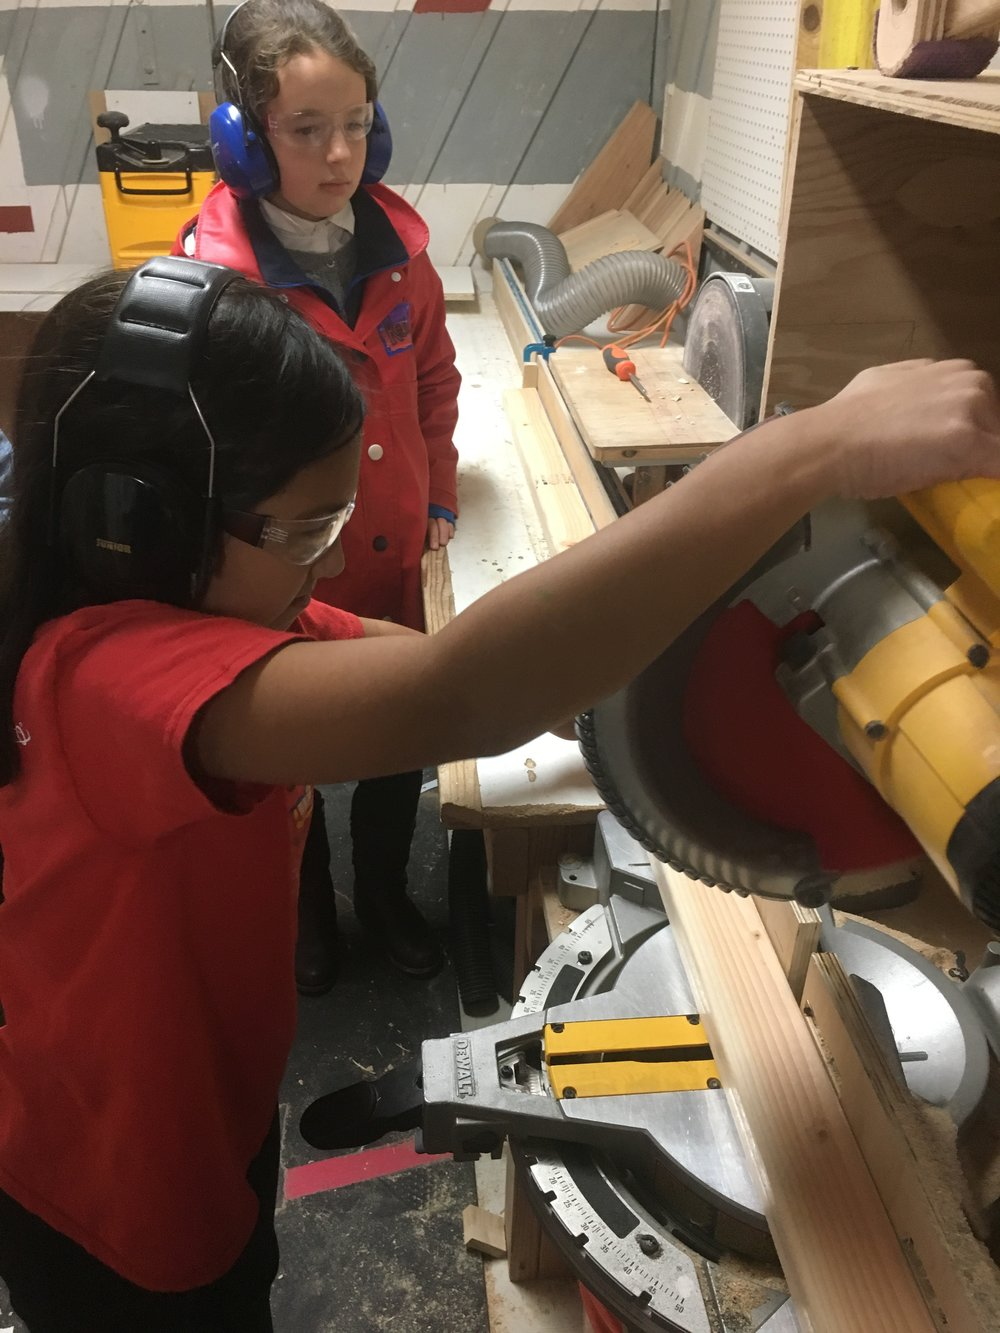 Ayana and Keira in the chopsaw room cutting pieces for the next part of their project.